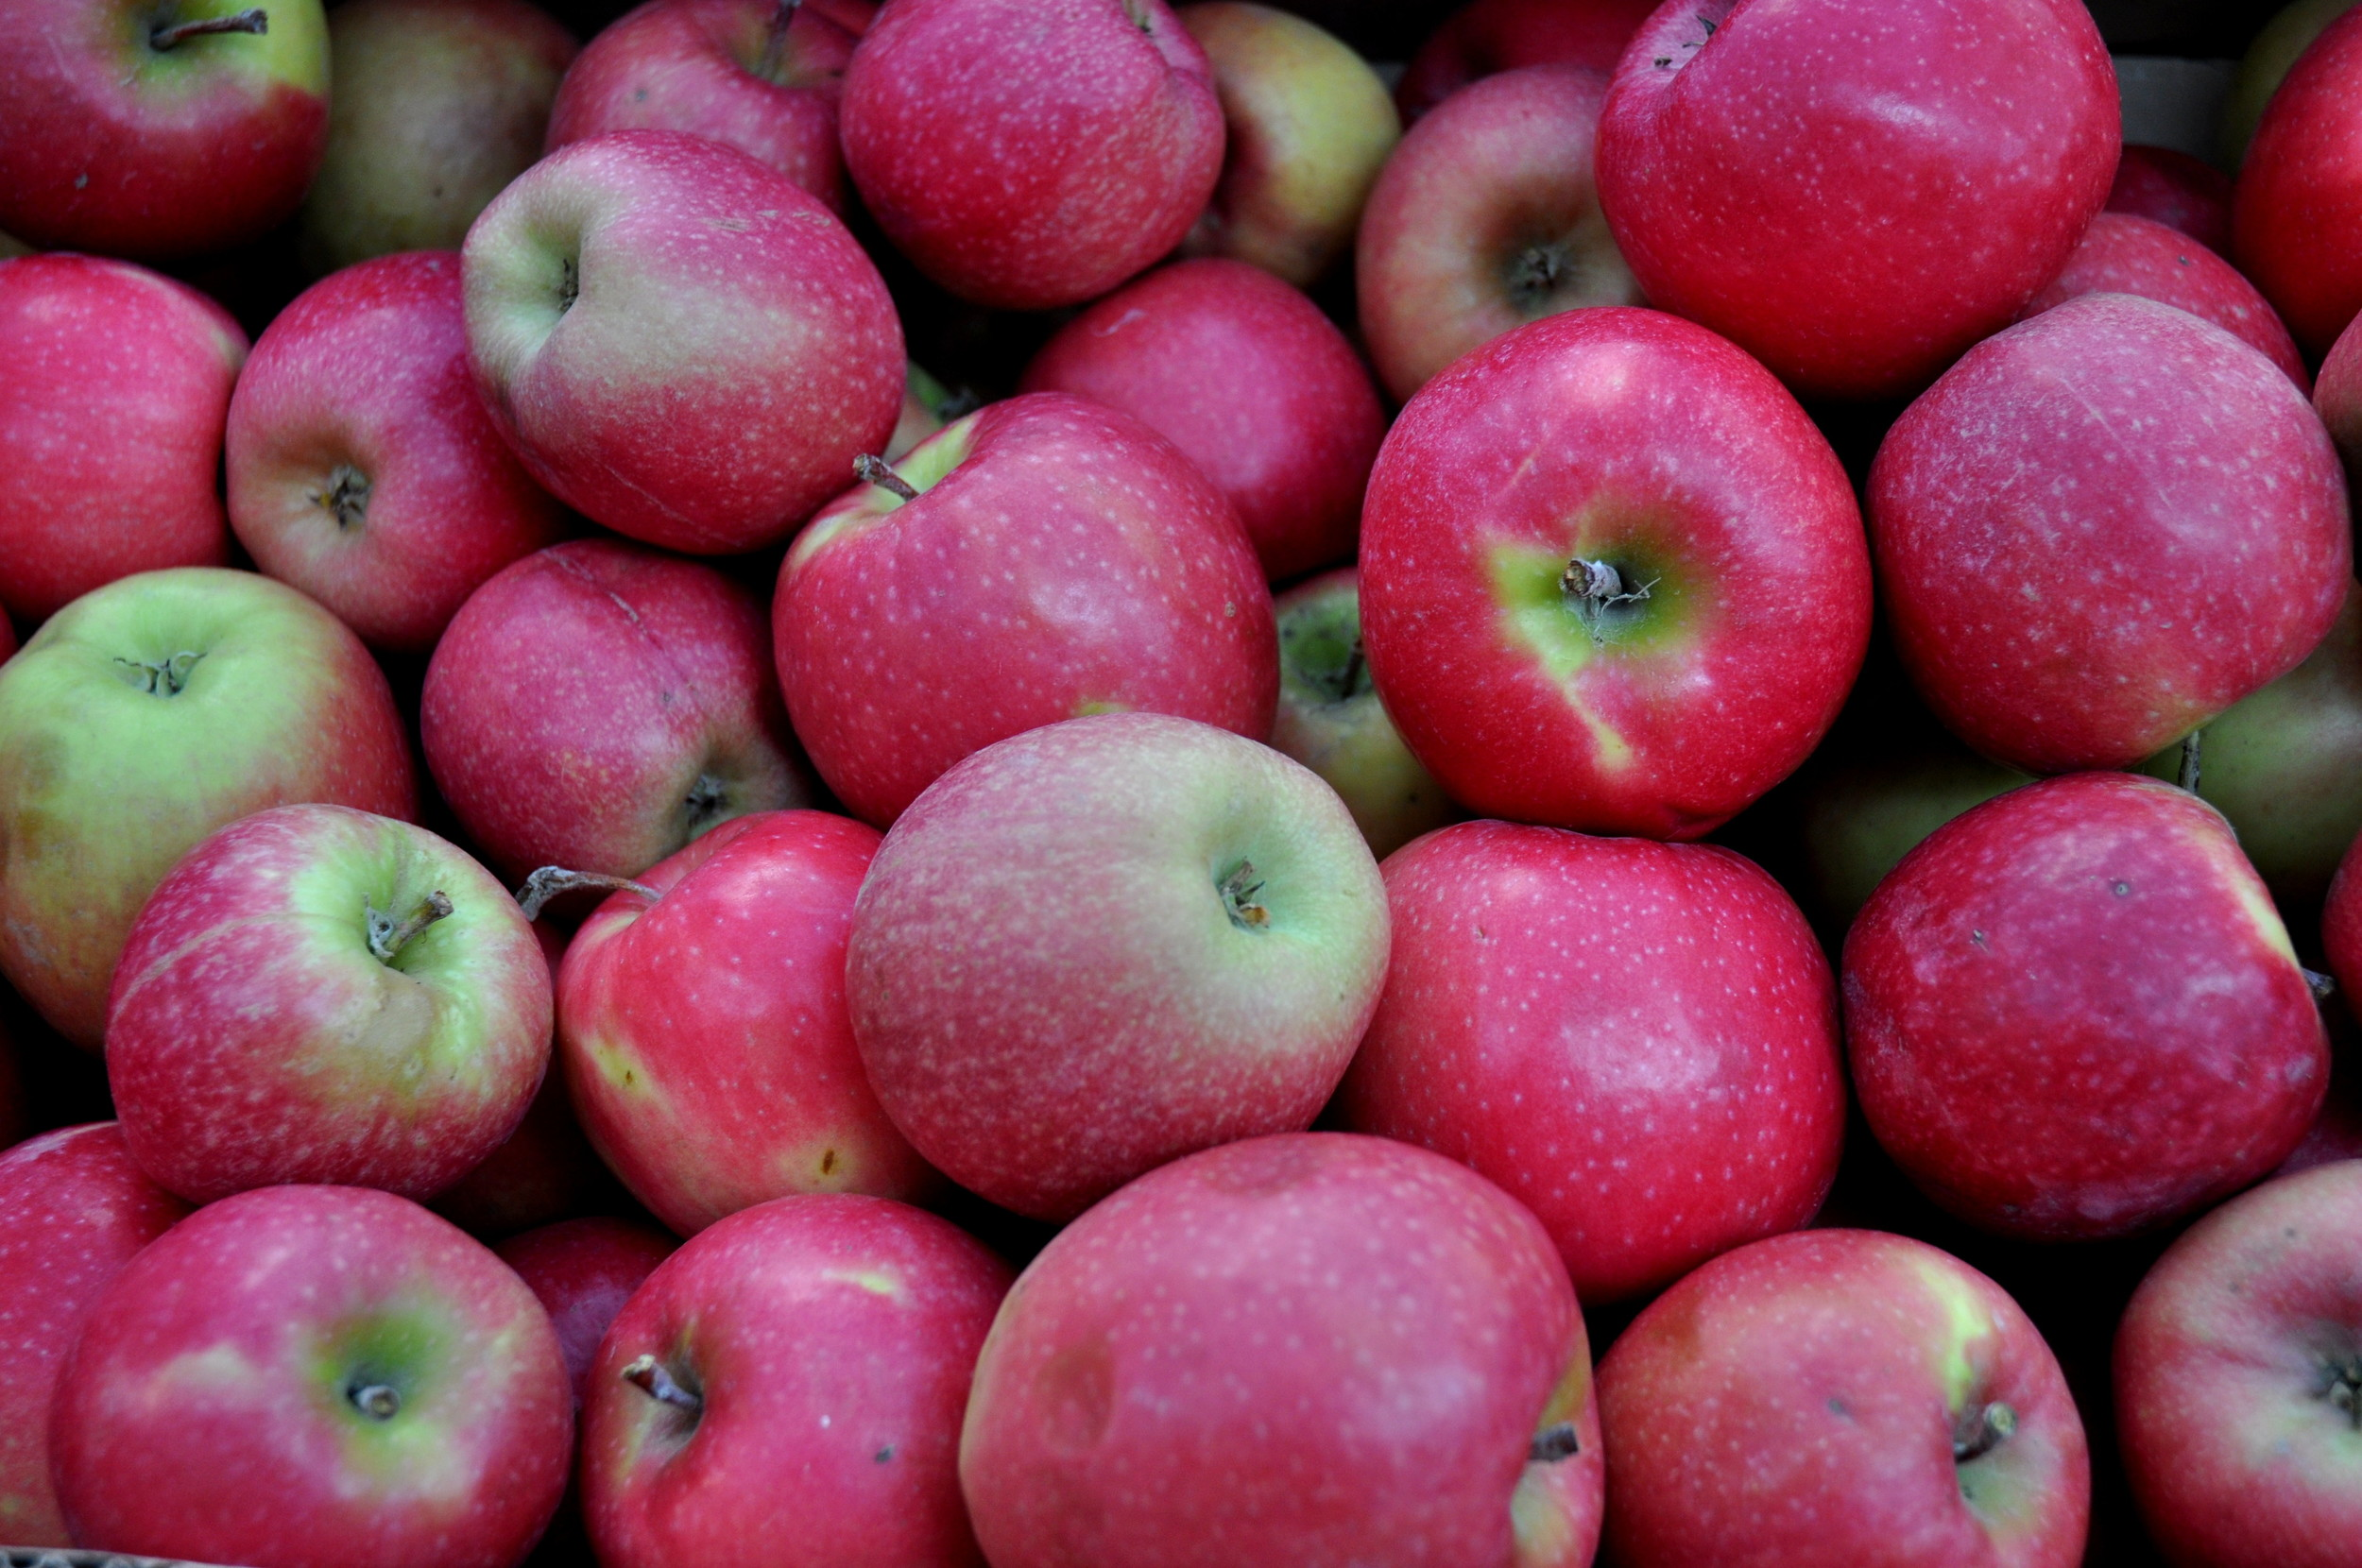 Pink Lady apples from Tiny's Organic Produce. Photo copyright 2012 by Zachary D. Lyons.